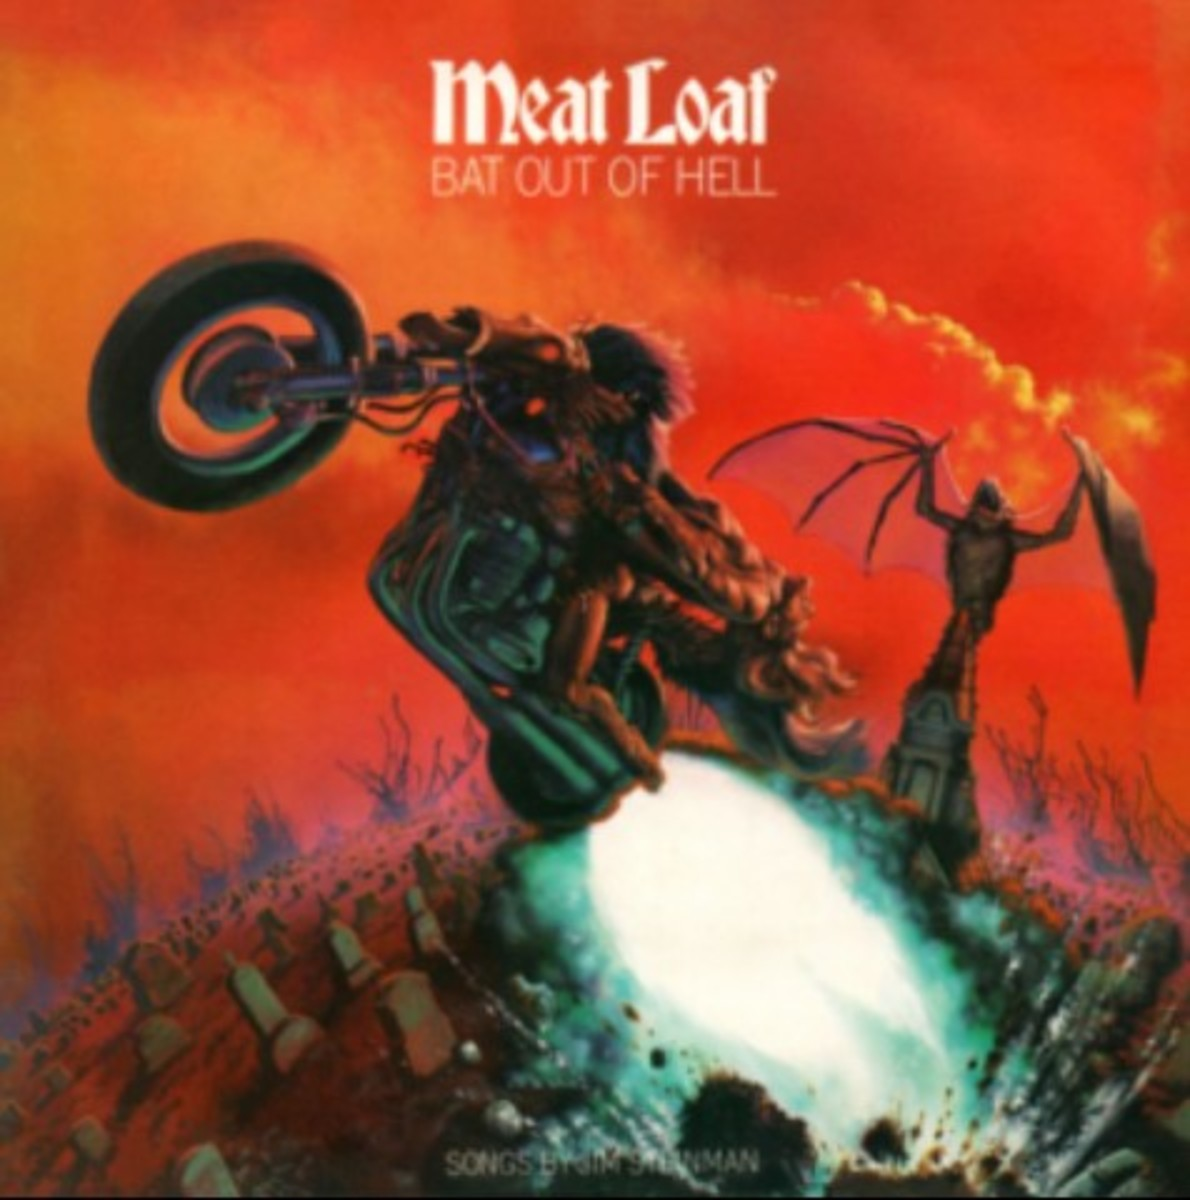 Songs by Jim Steinman shown at the bottom of the original album cover